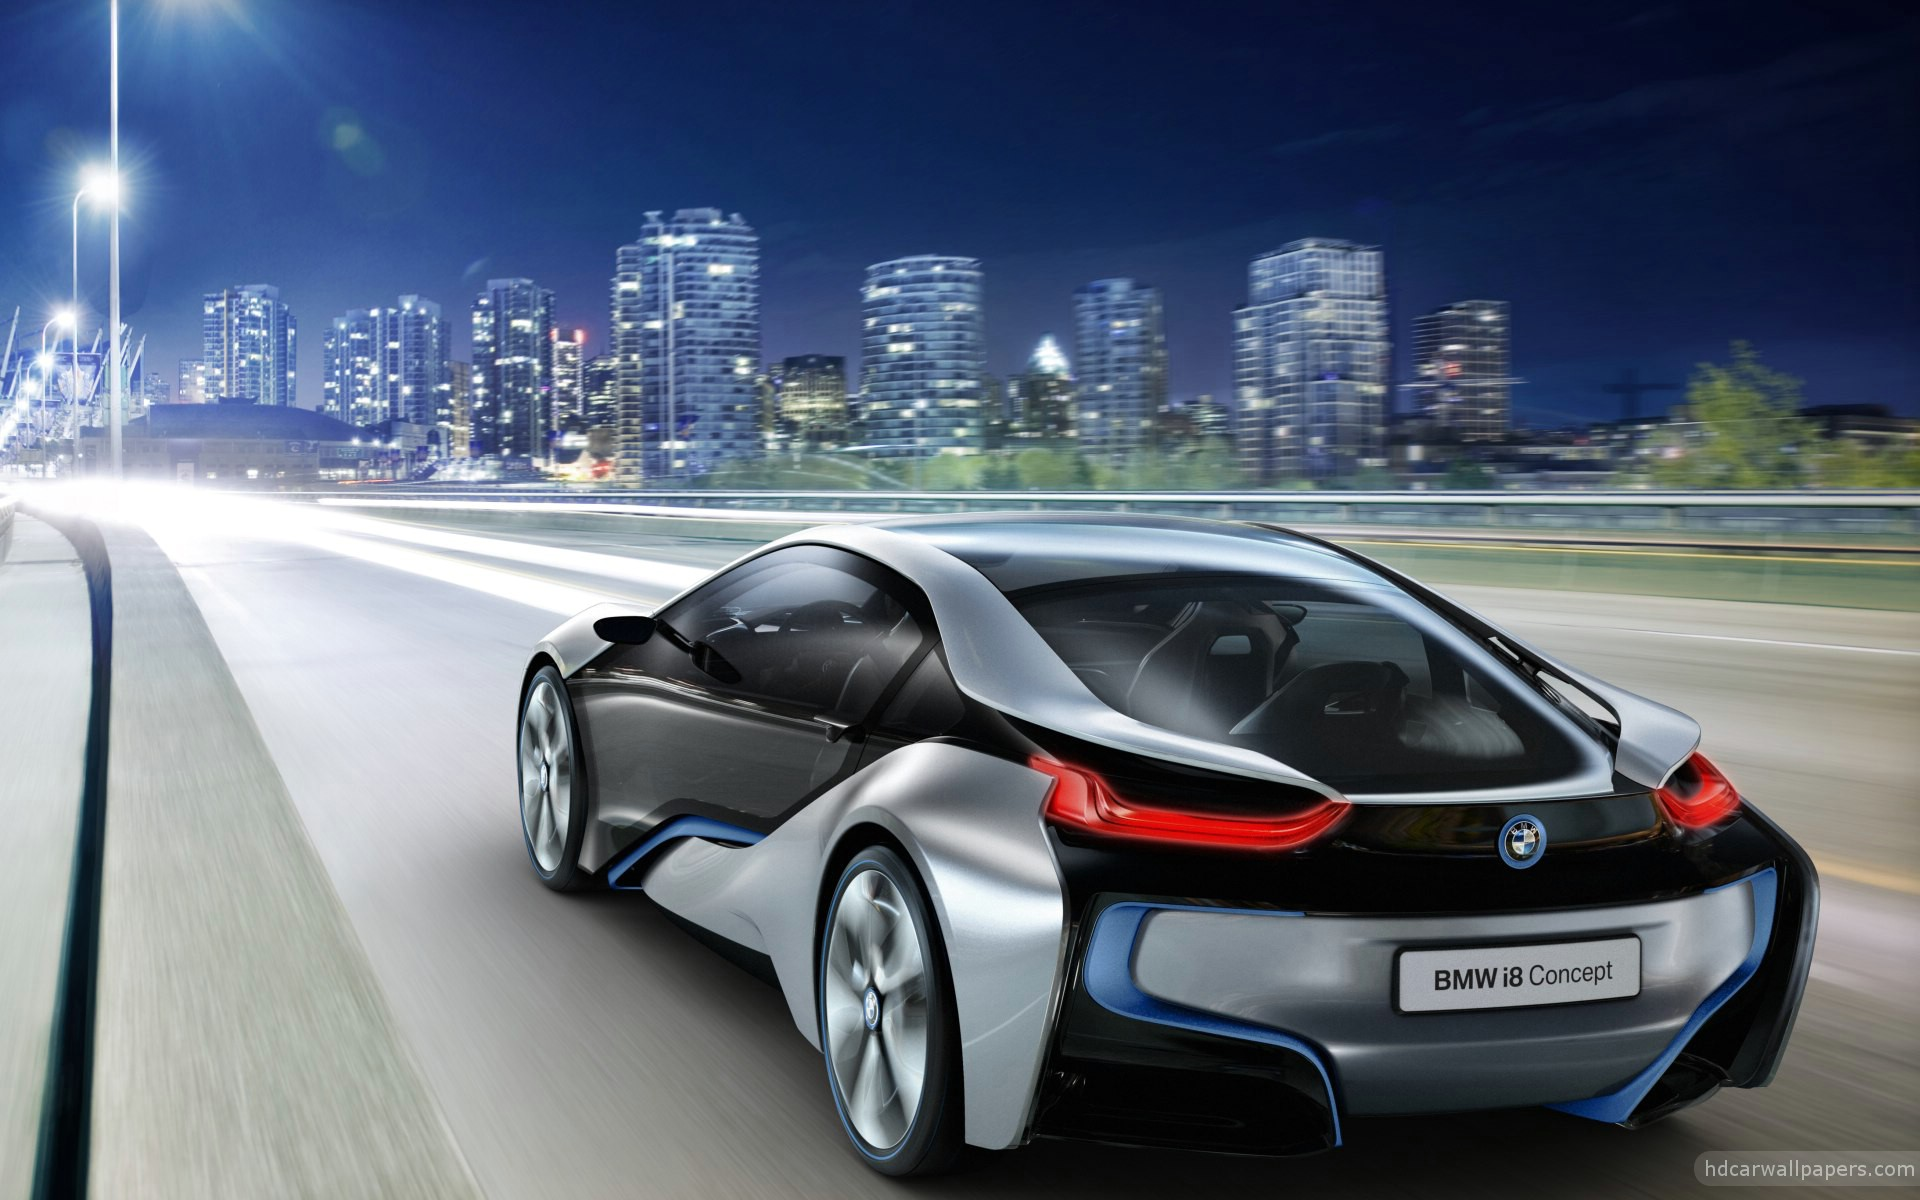 2012 bmw i8 concept 4 wallpaper hd car wallpapers id 2156. Black Bedroom Furniture Sets. Home Design Ideas